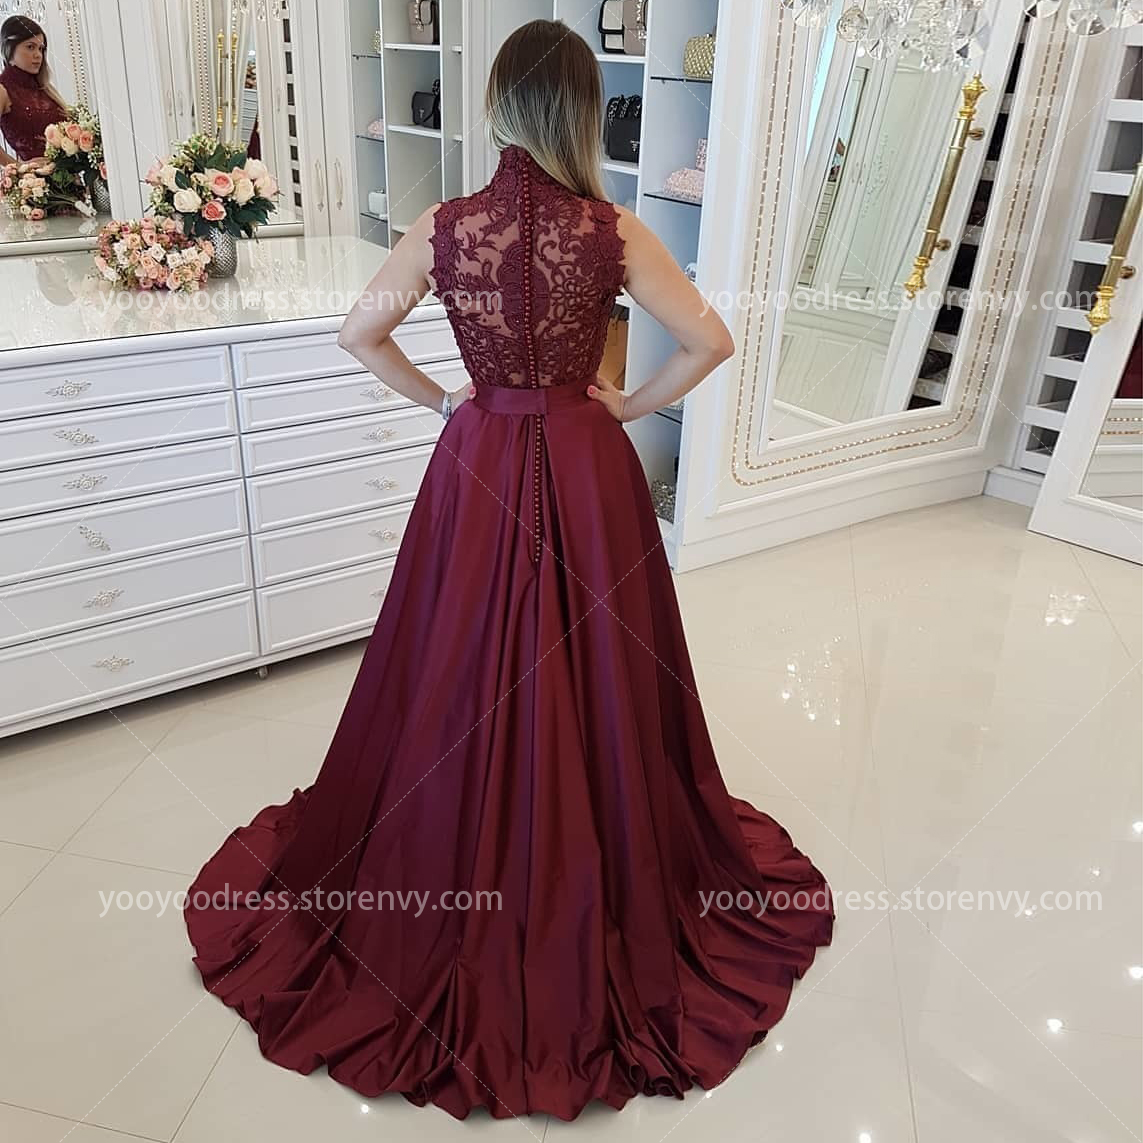 5d01315a469 Burgundy A-Line Prom Dress Elegant High Neck Lace Appliques Beaded Satin  Floor Length Formal Long Evening Party Gowns on Storenvy